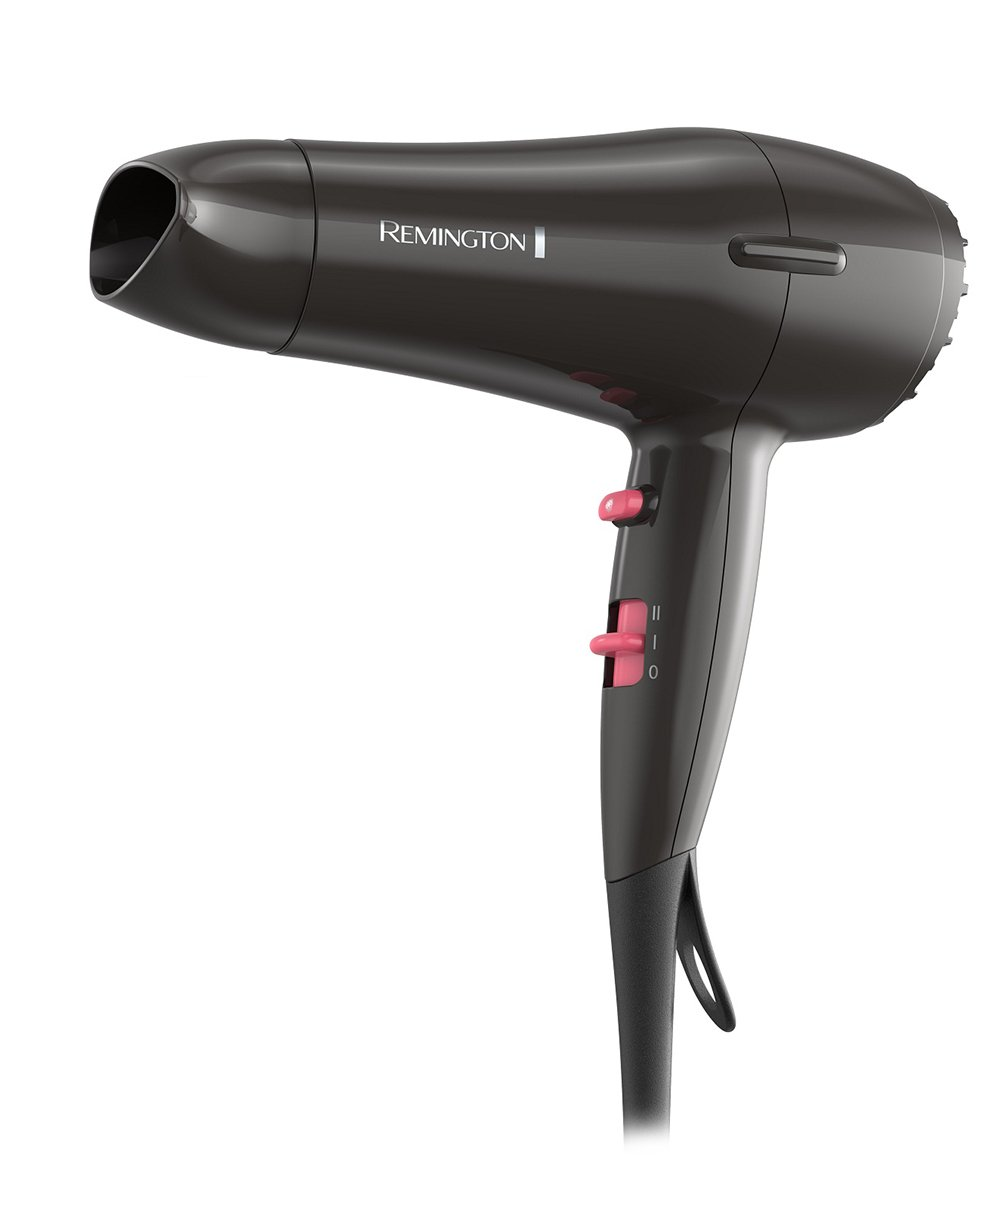 Remington D2121 hair Dryer with 3 Year